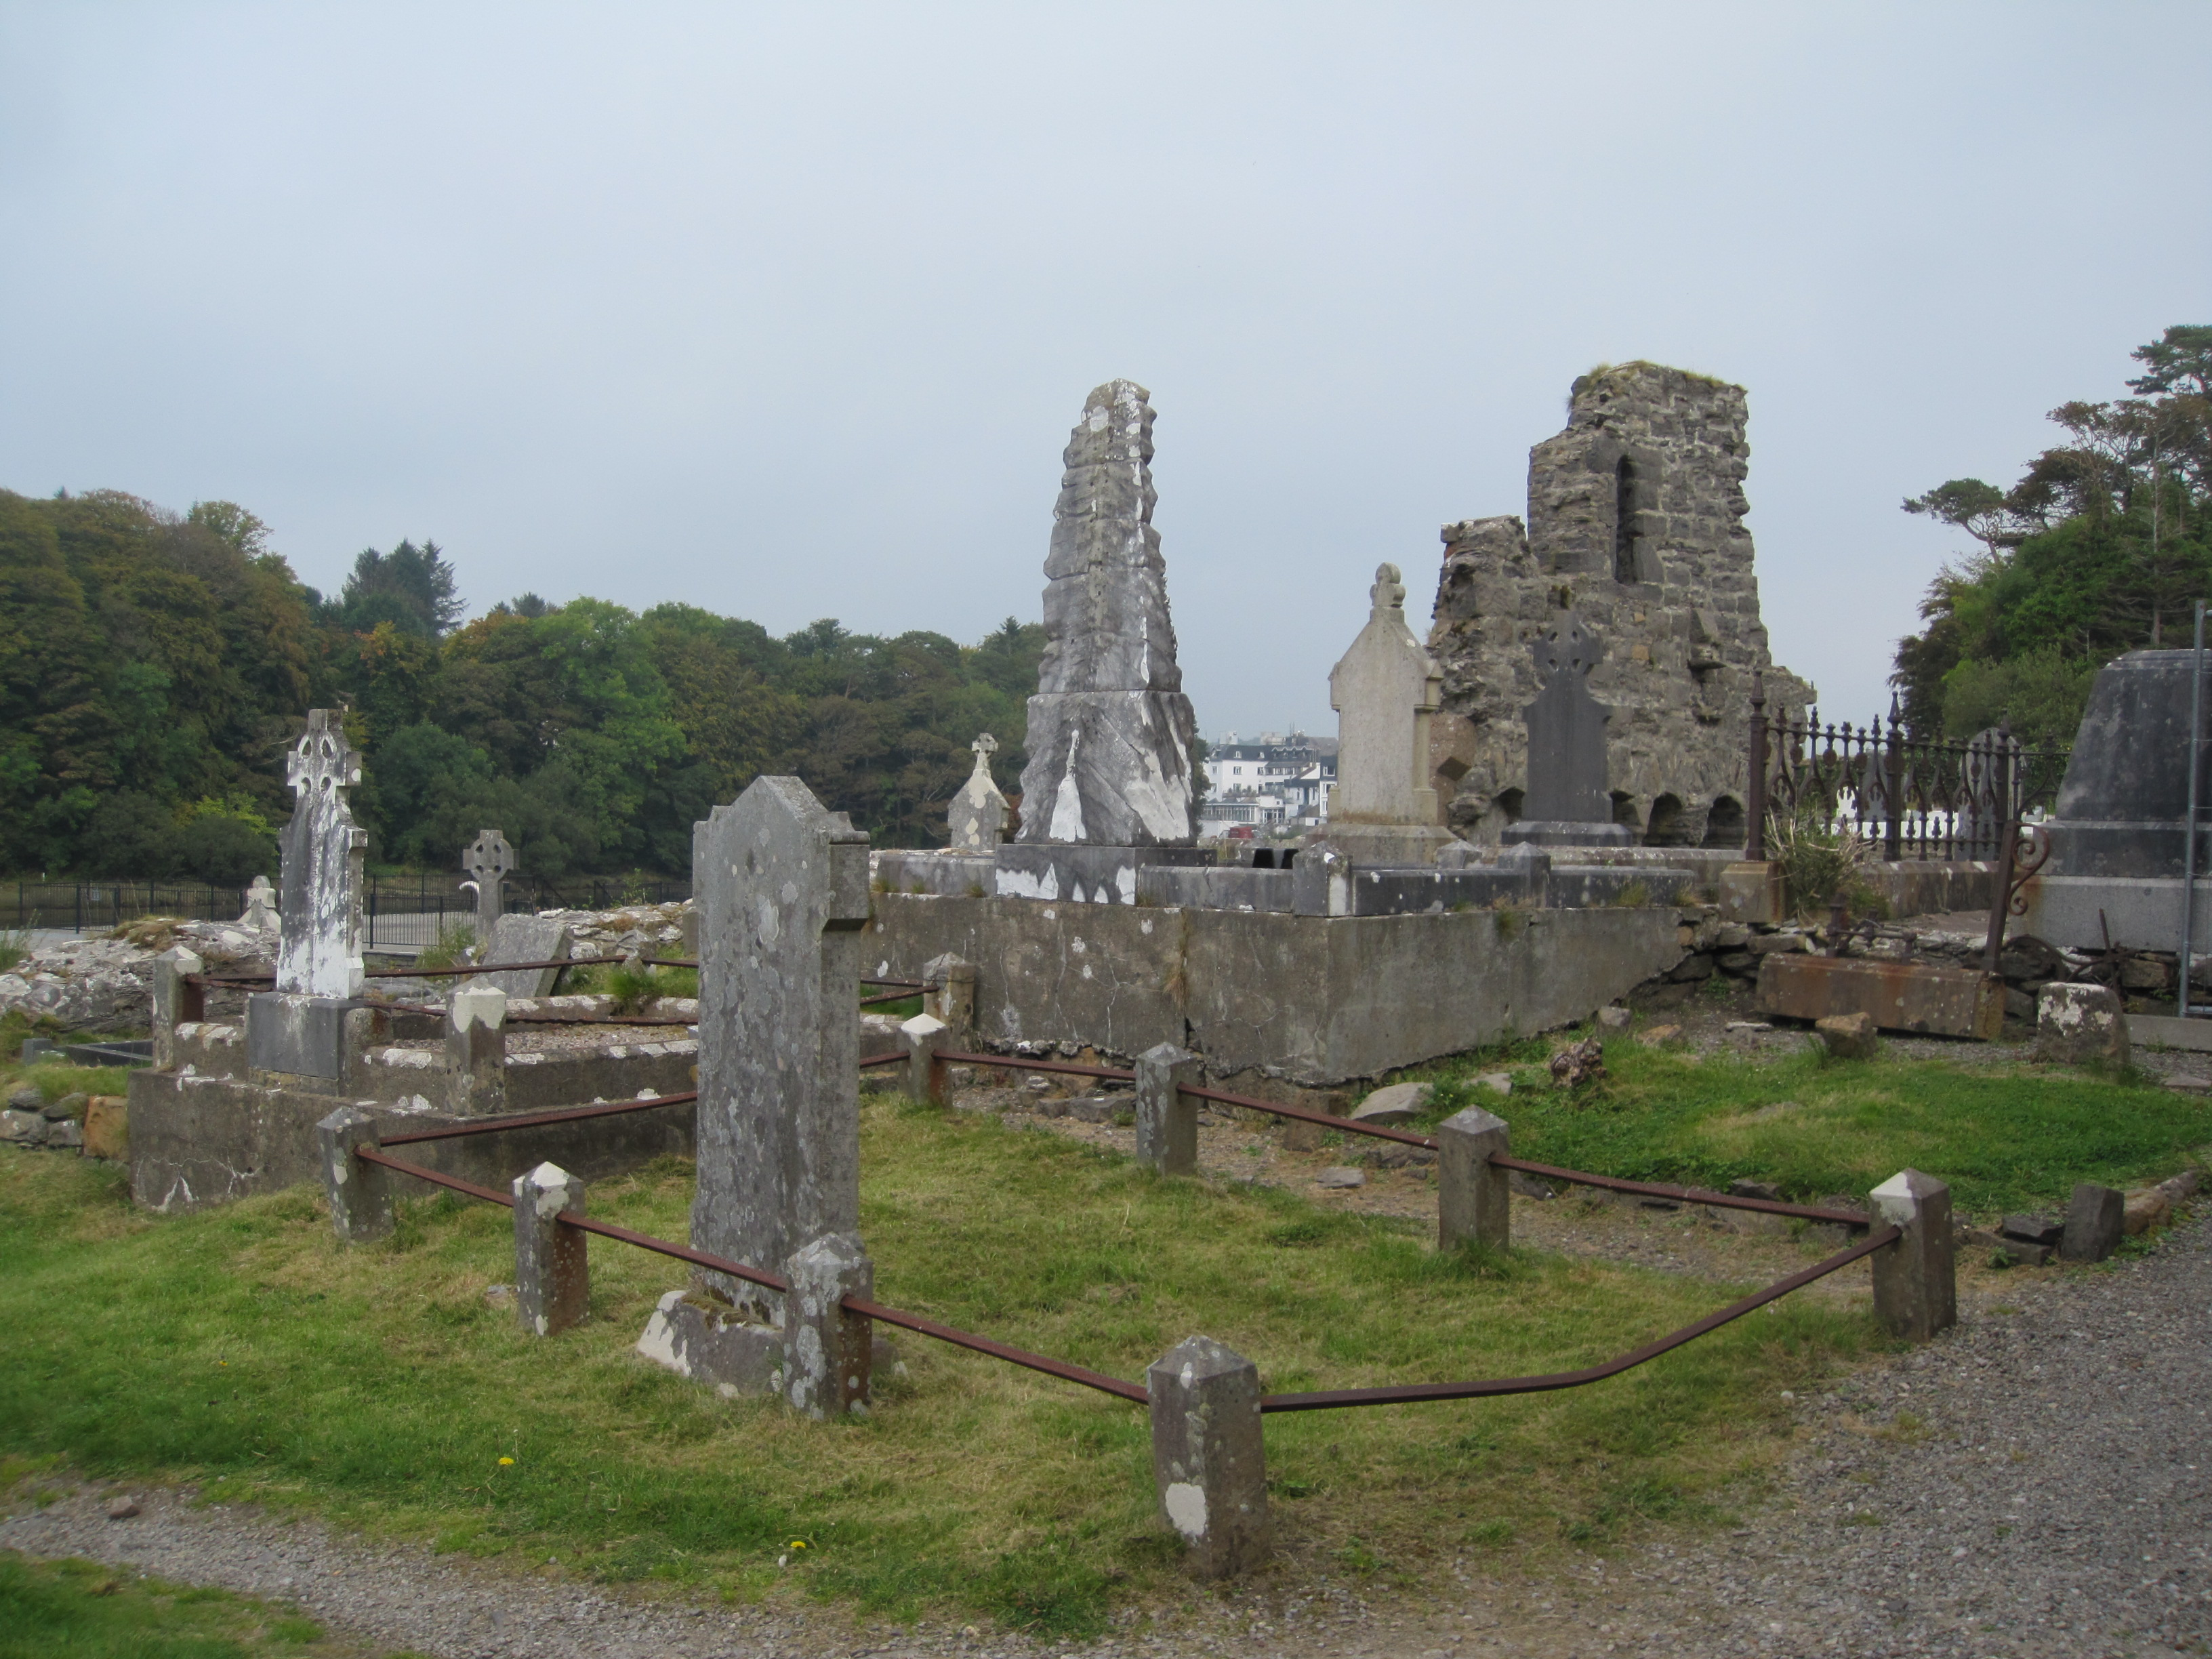 File:Donegal Abbey Cemetery.JPG - Wikimedia Commons